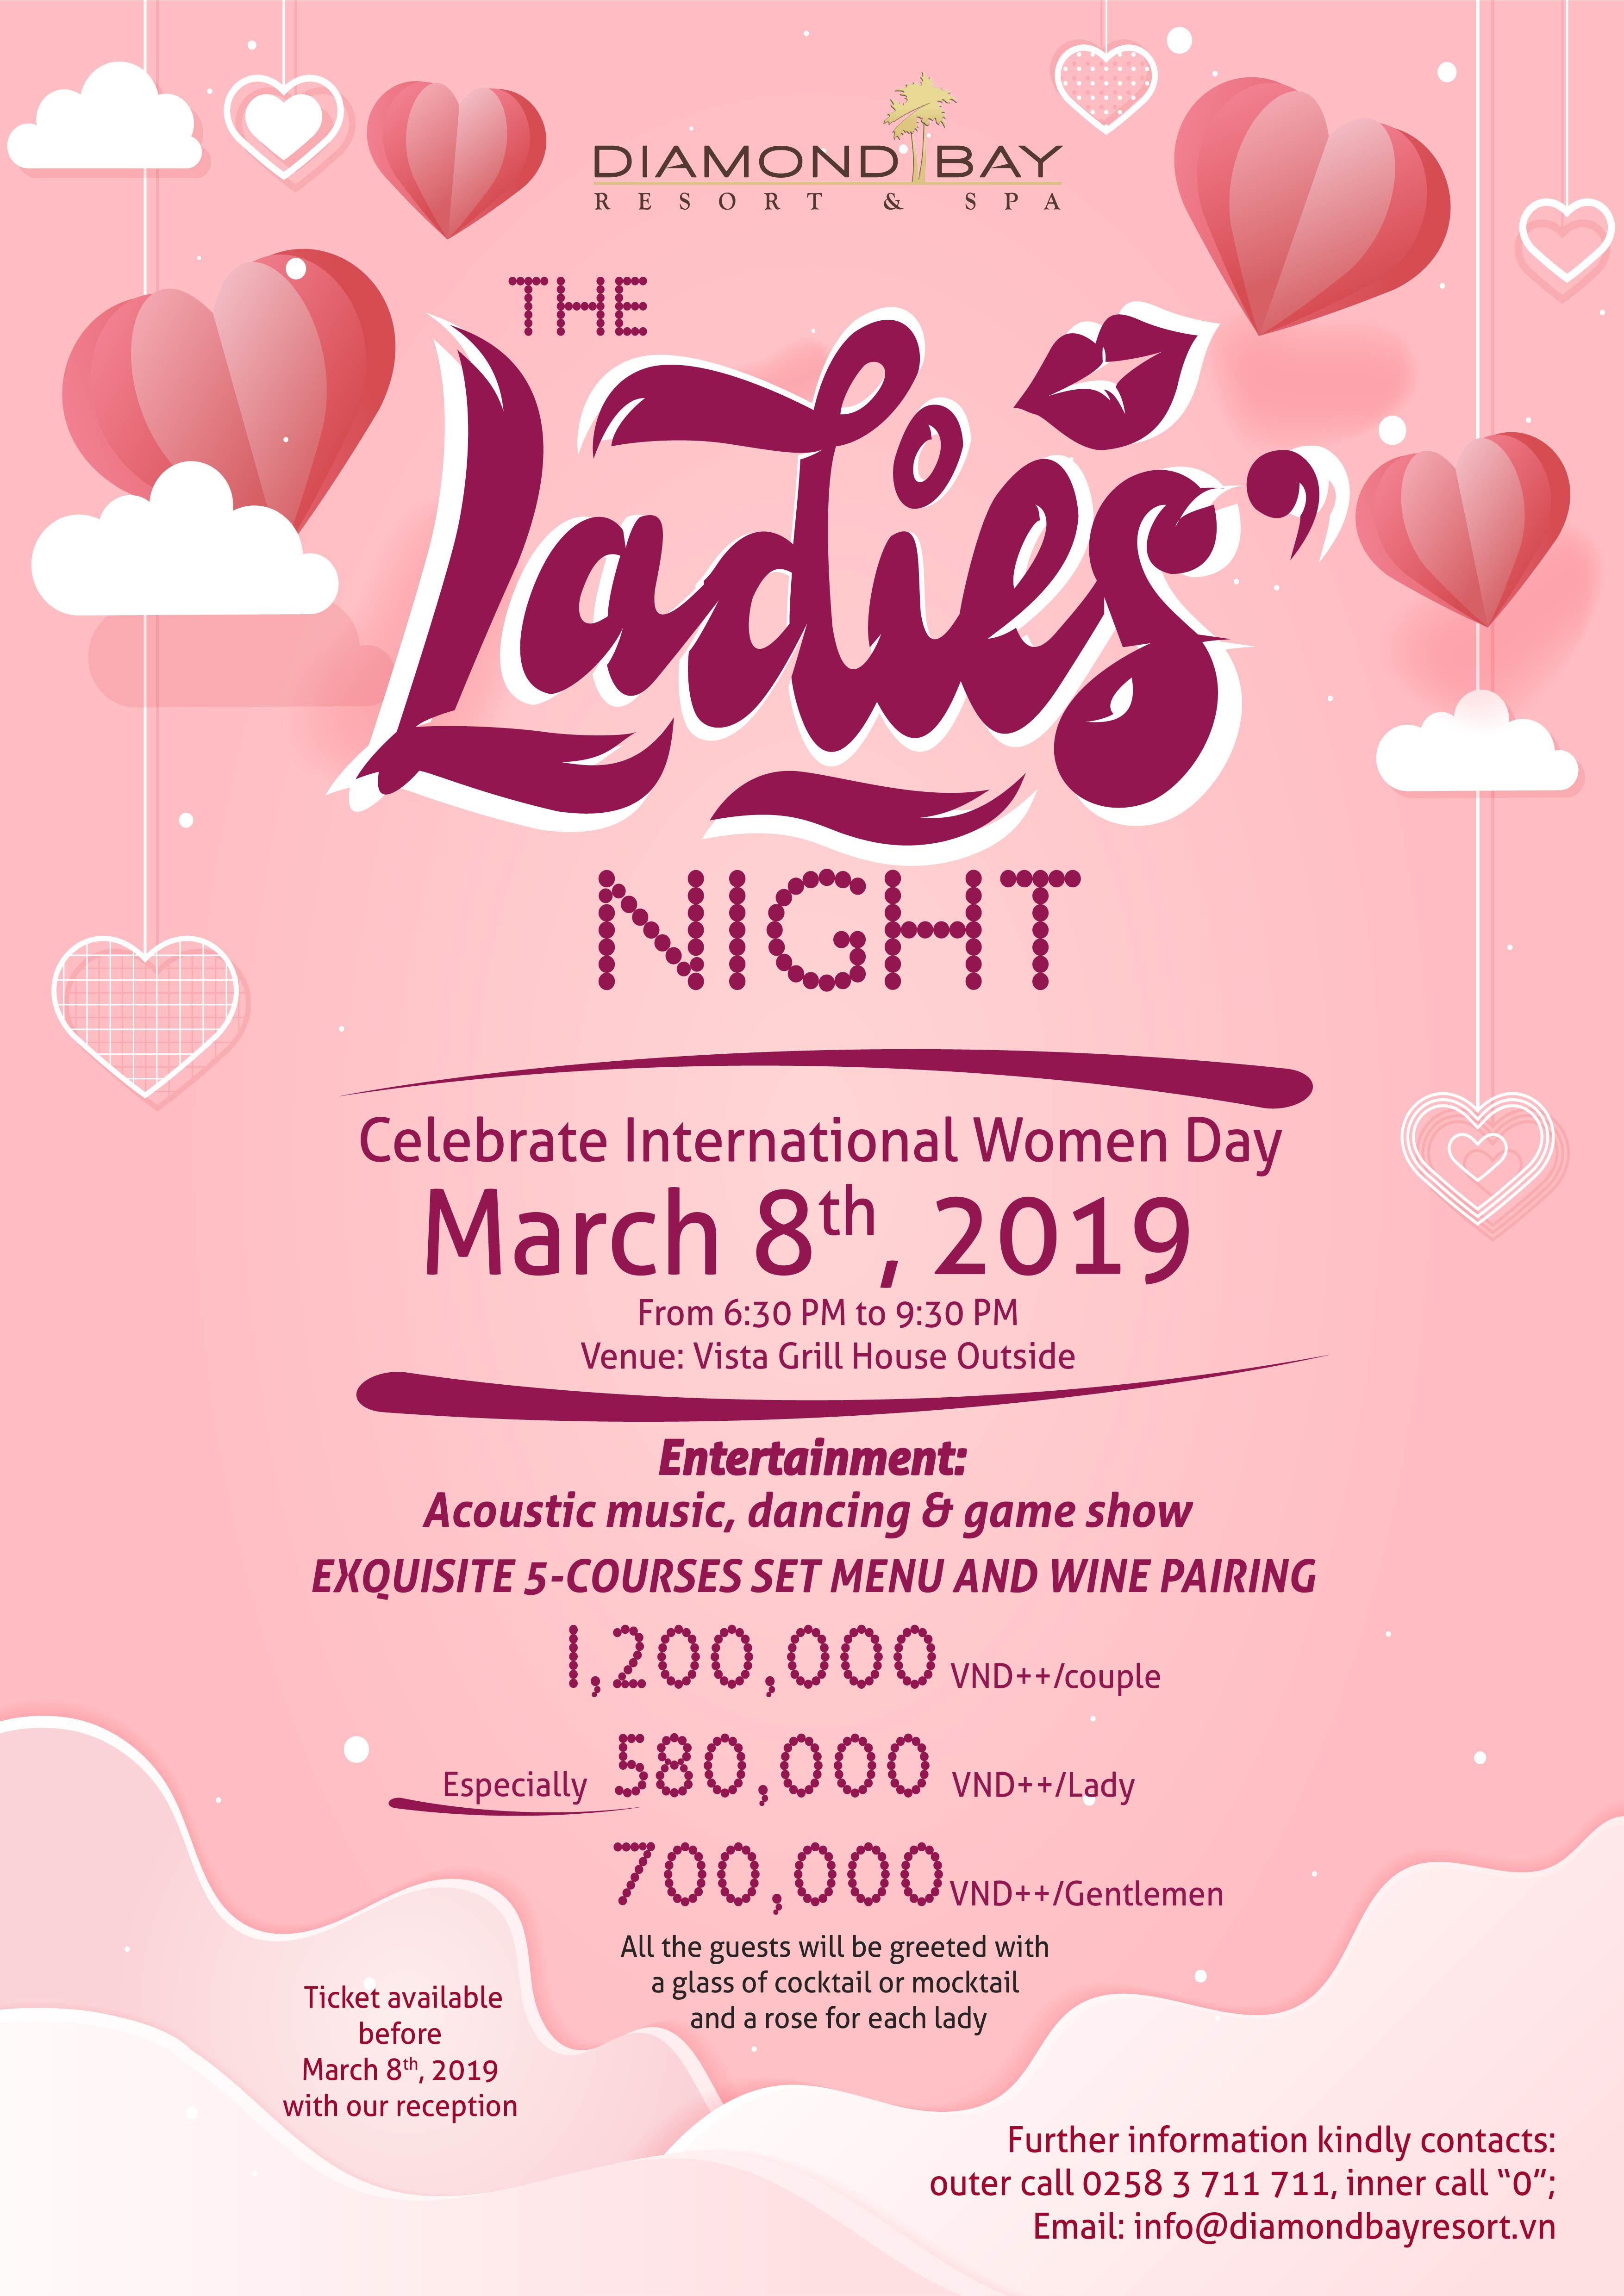 The Ladies Night set menu at Diamond Bay Resort & Spa